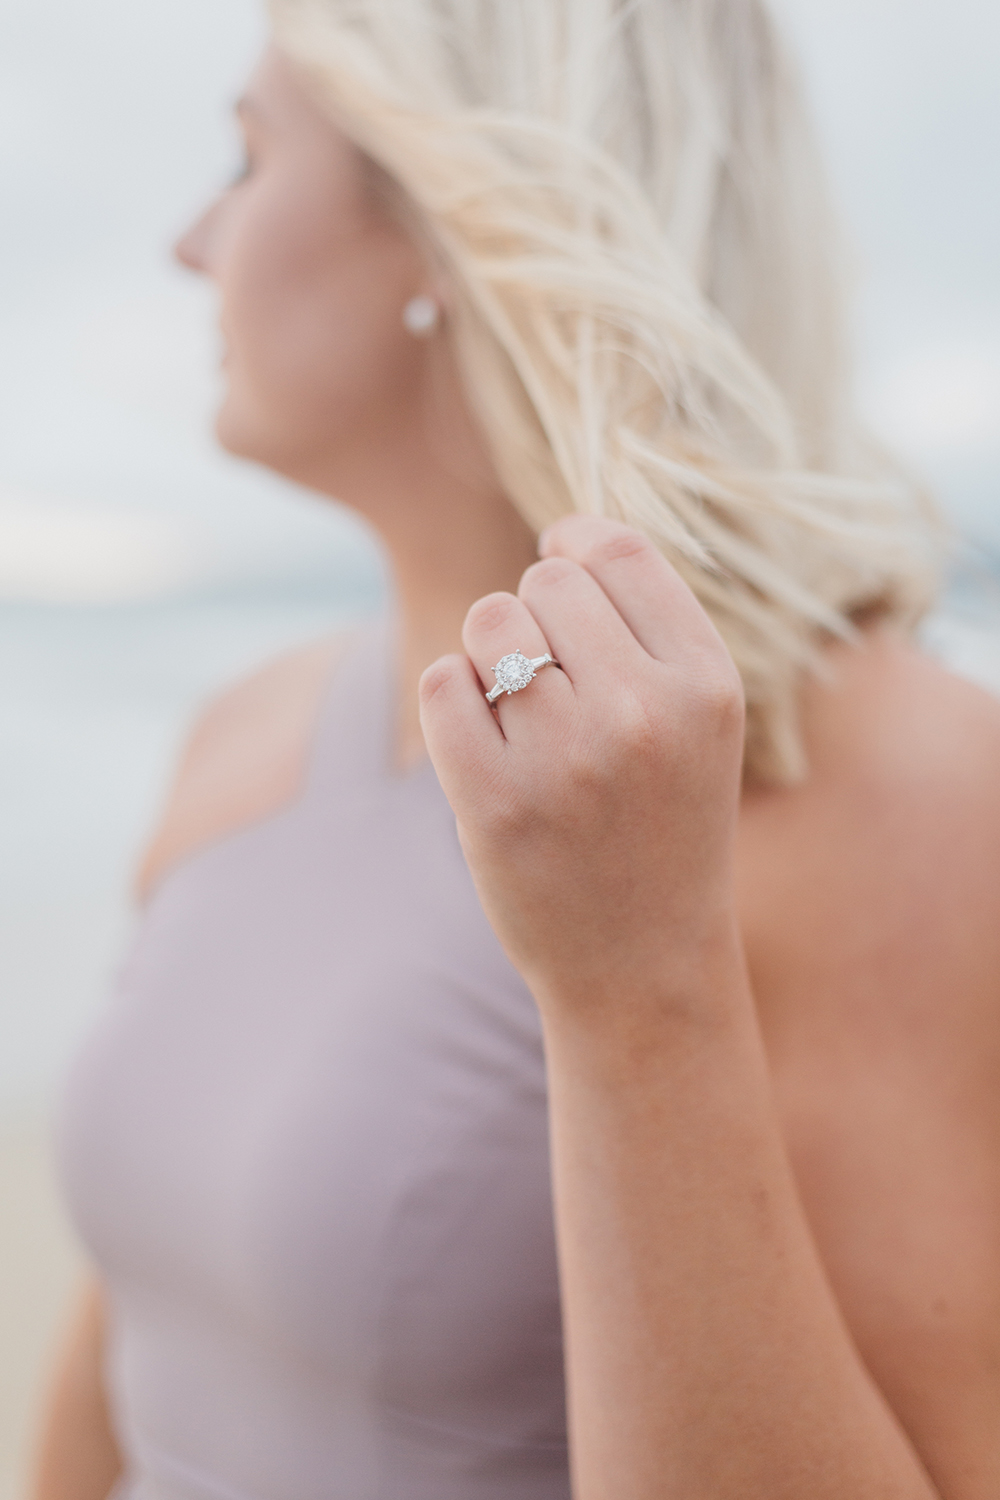 cori and andrew's engagement session photos in half moon bay california.